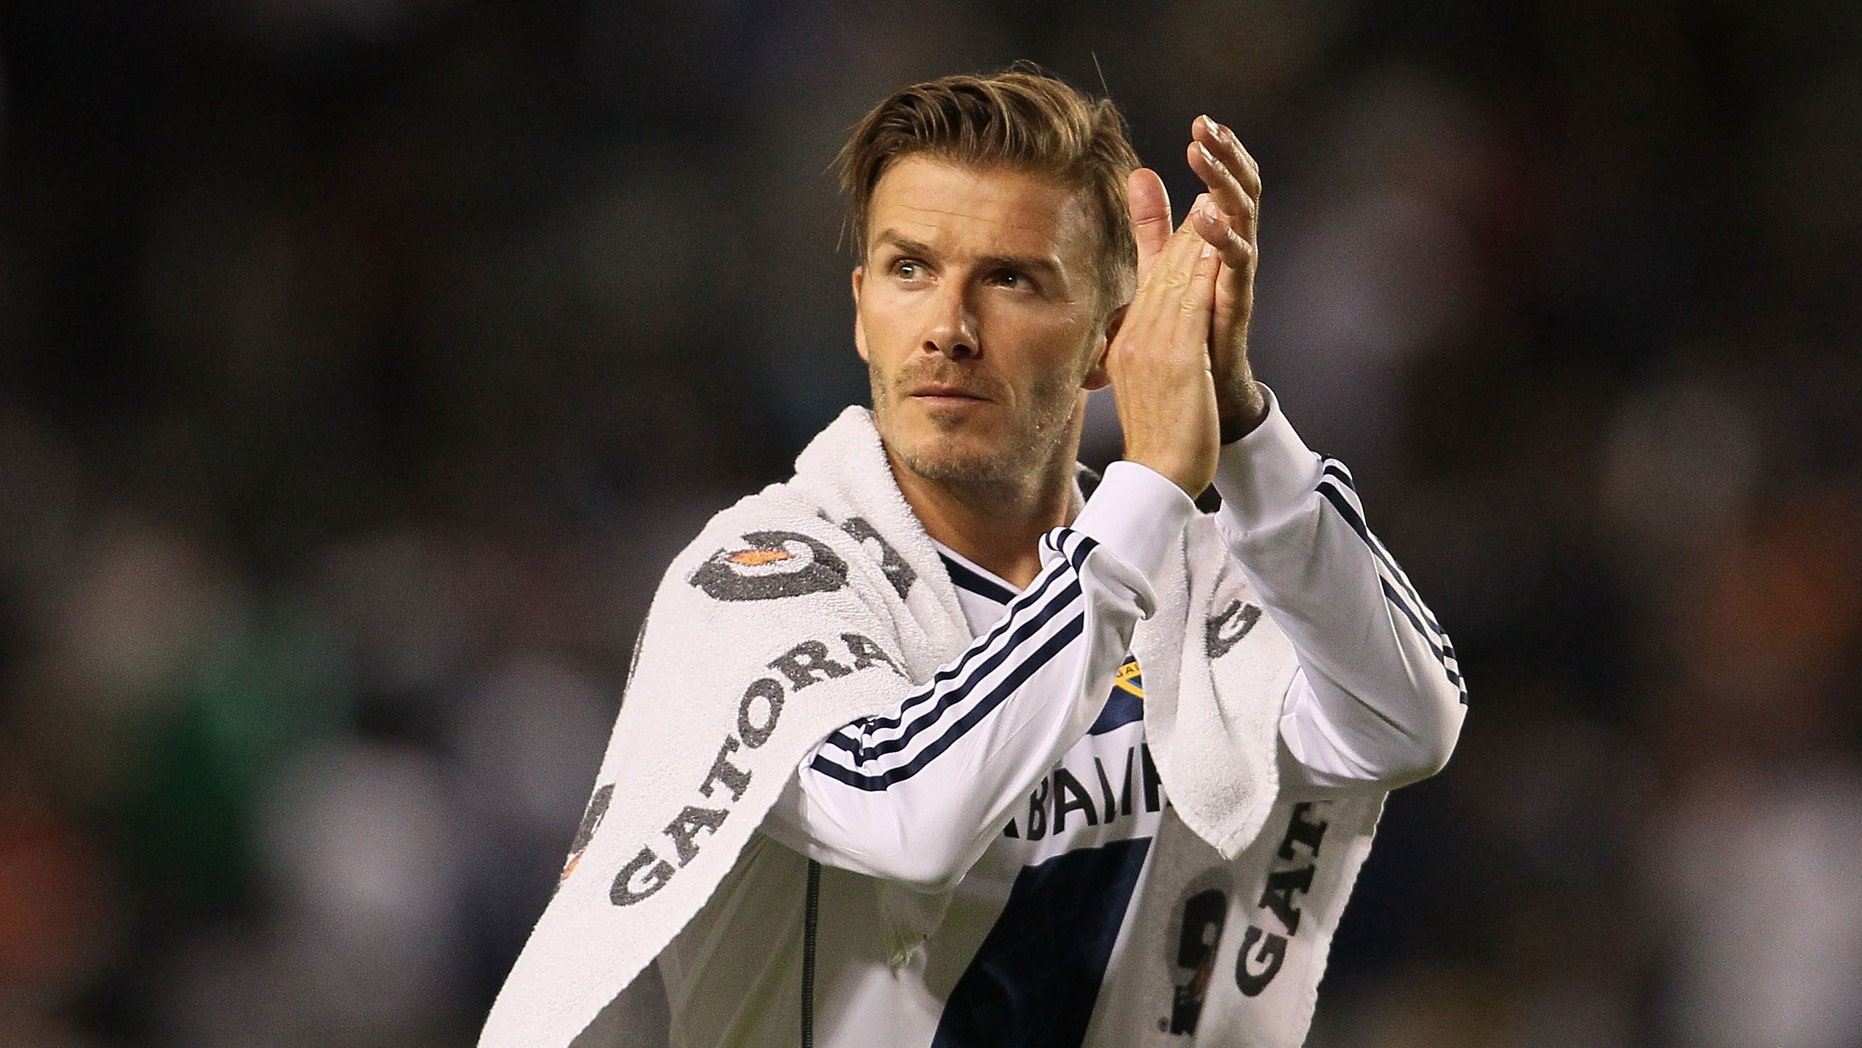 David Beckham #23 of the Los Angeles Galaxy   (Photo by Victor Decolongon/Getty Images)